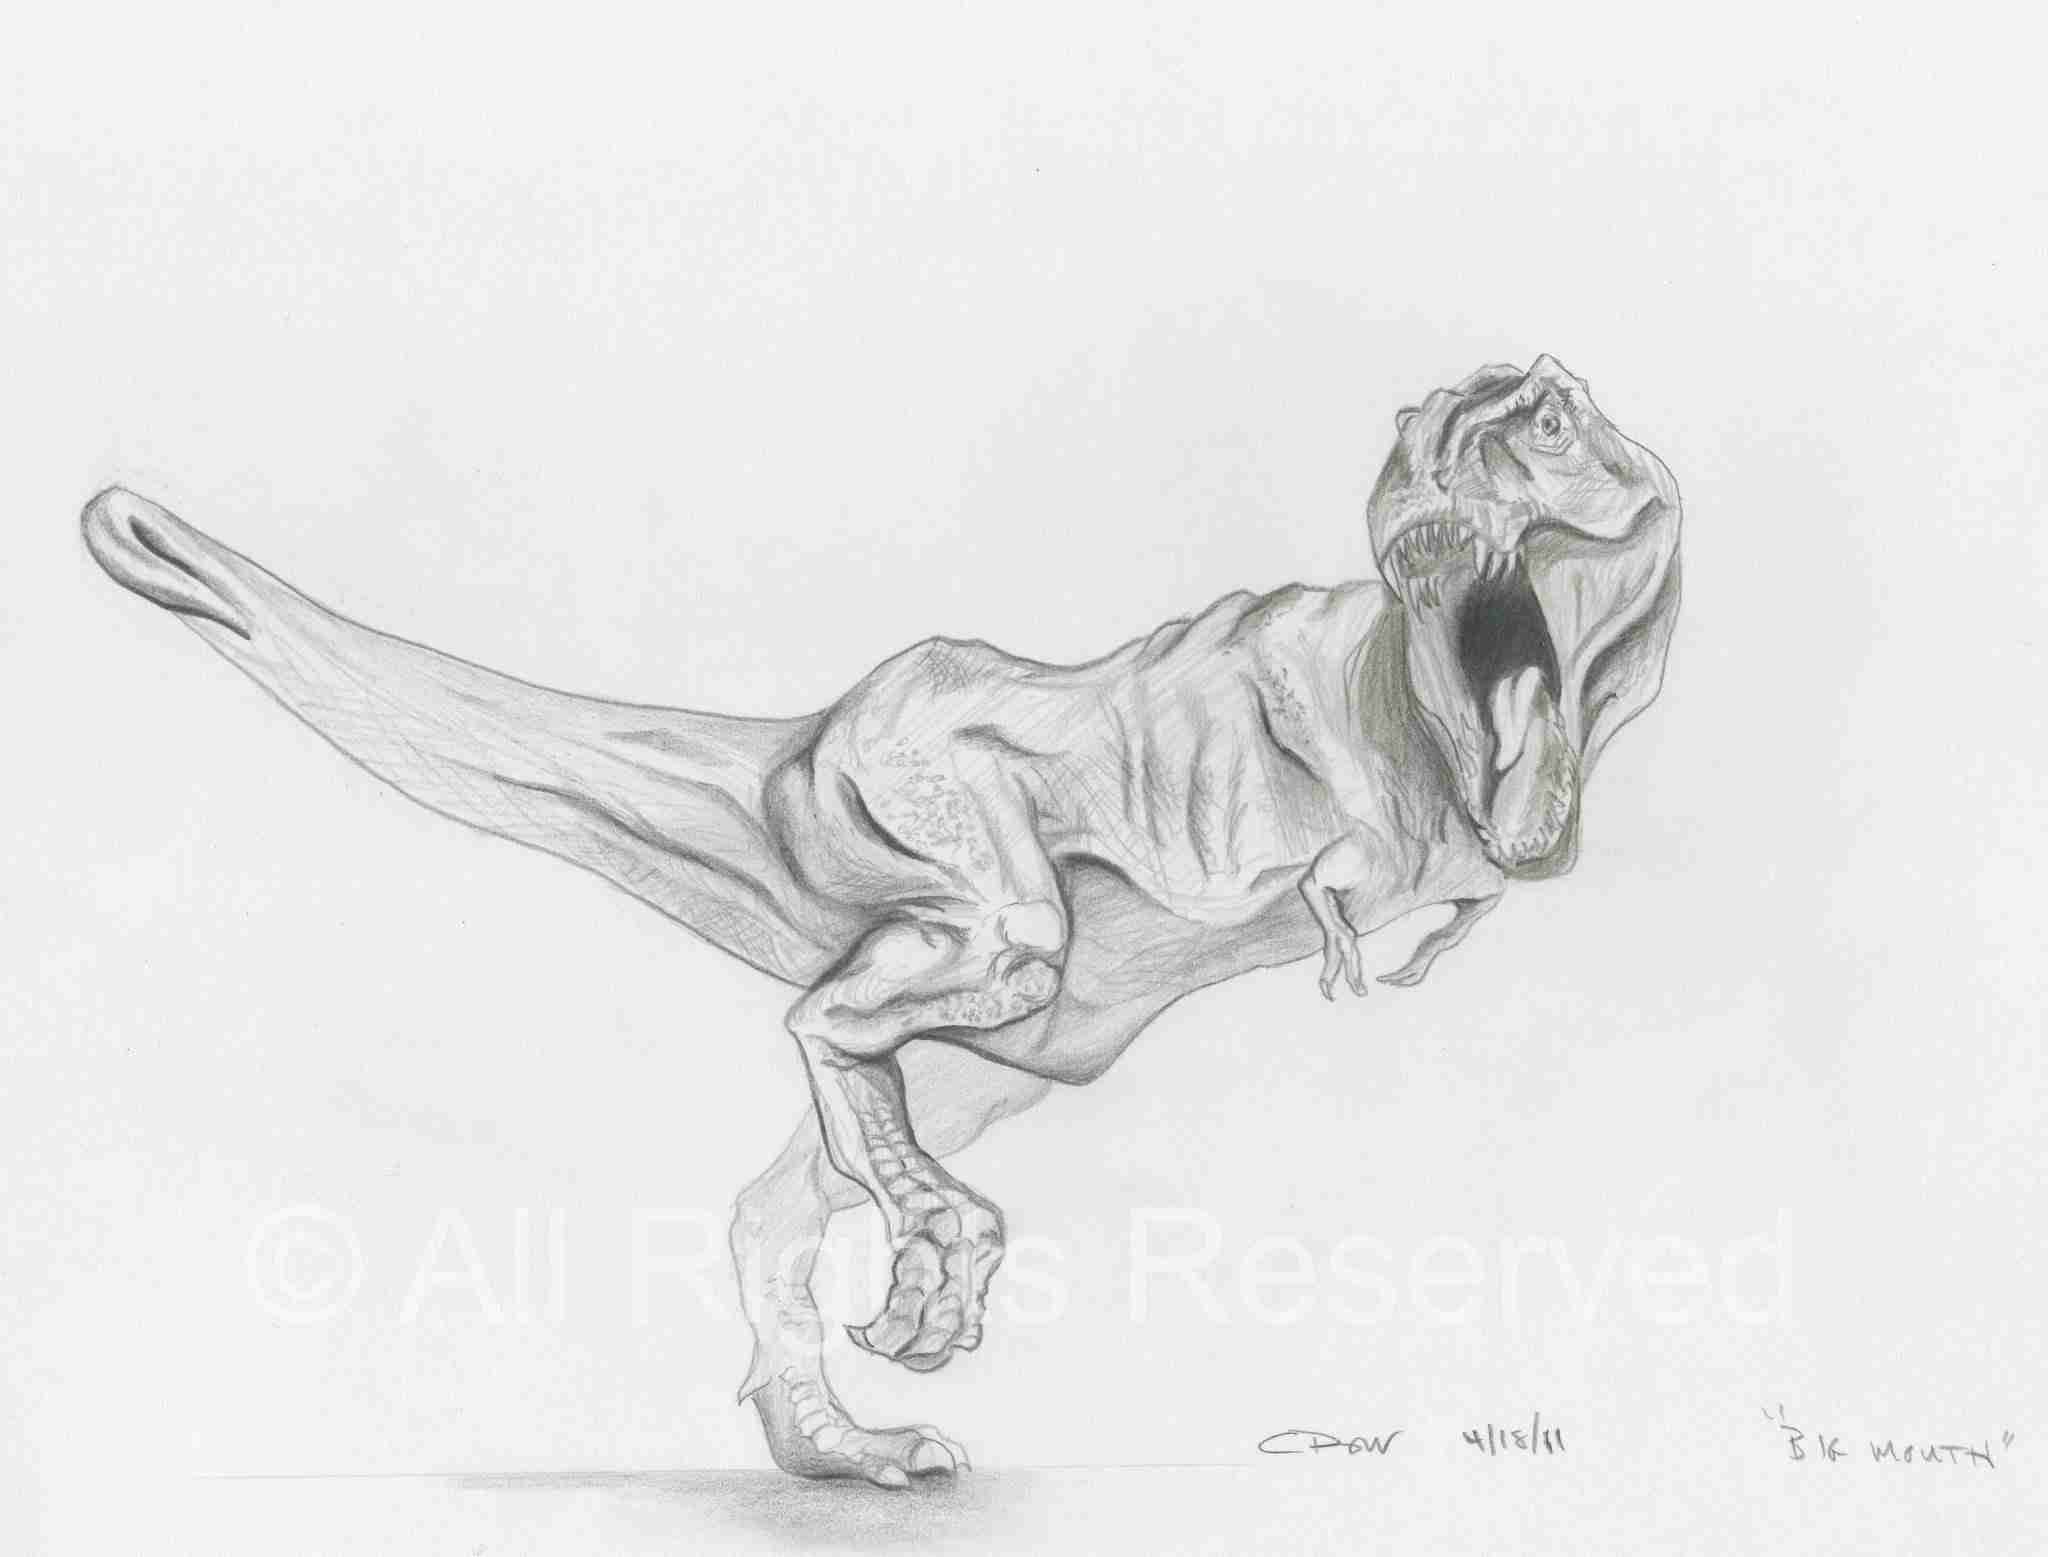 drawing of a t-rex